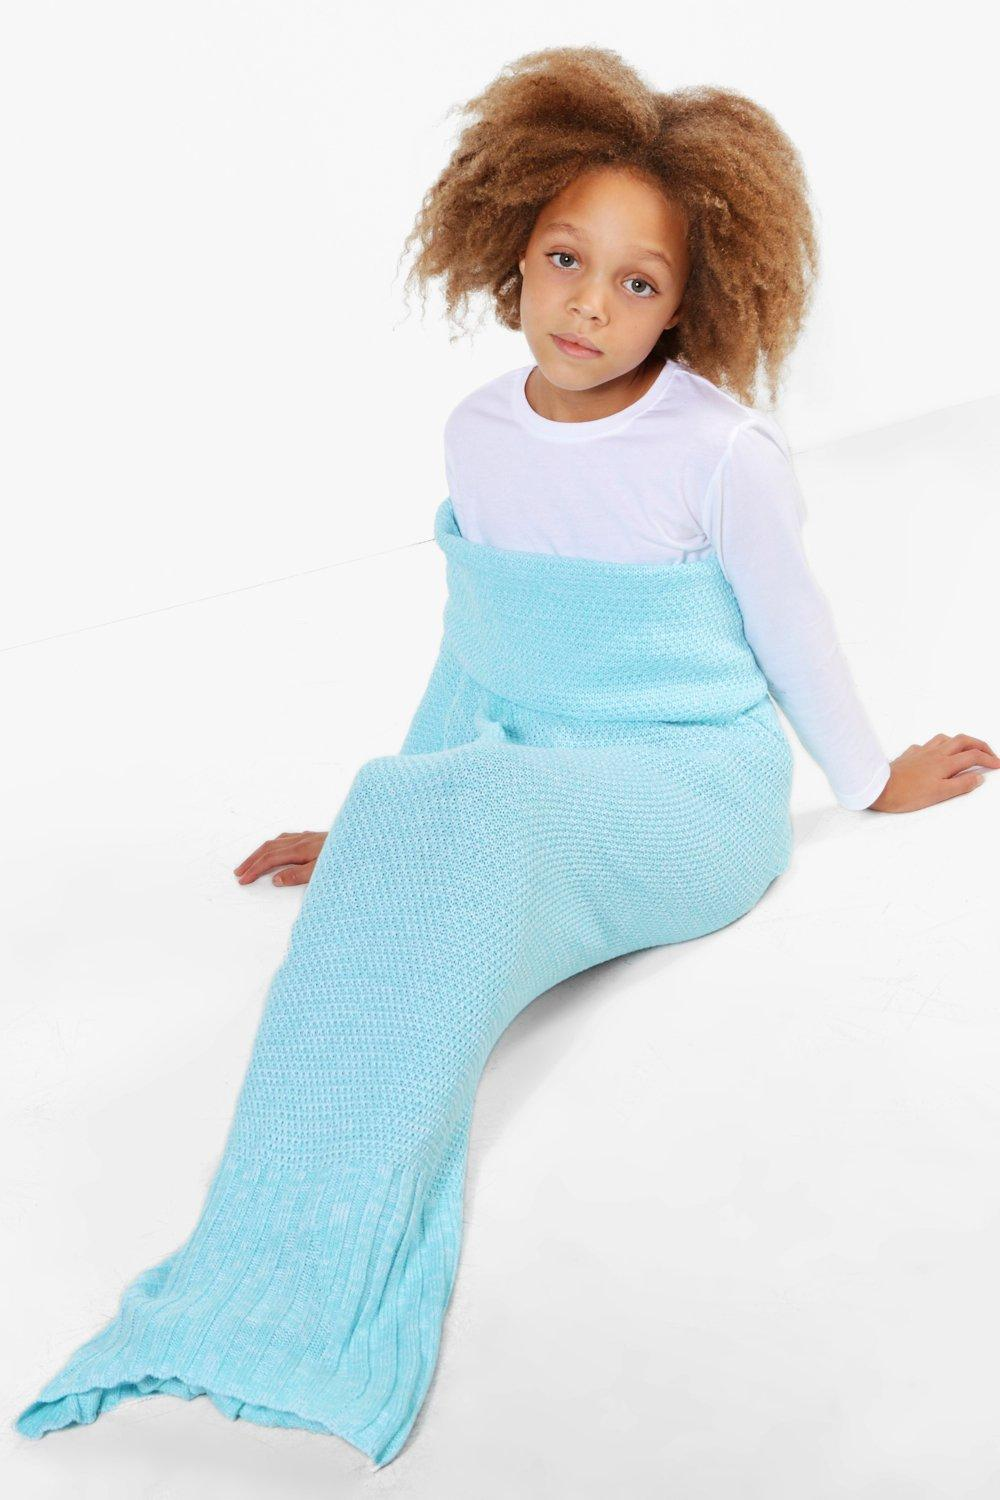 Mermaid Tail Blanket - aqua - Girls Mermaid Tail B